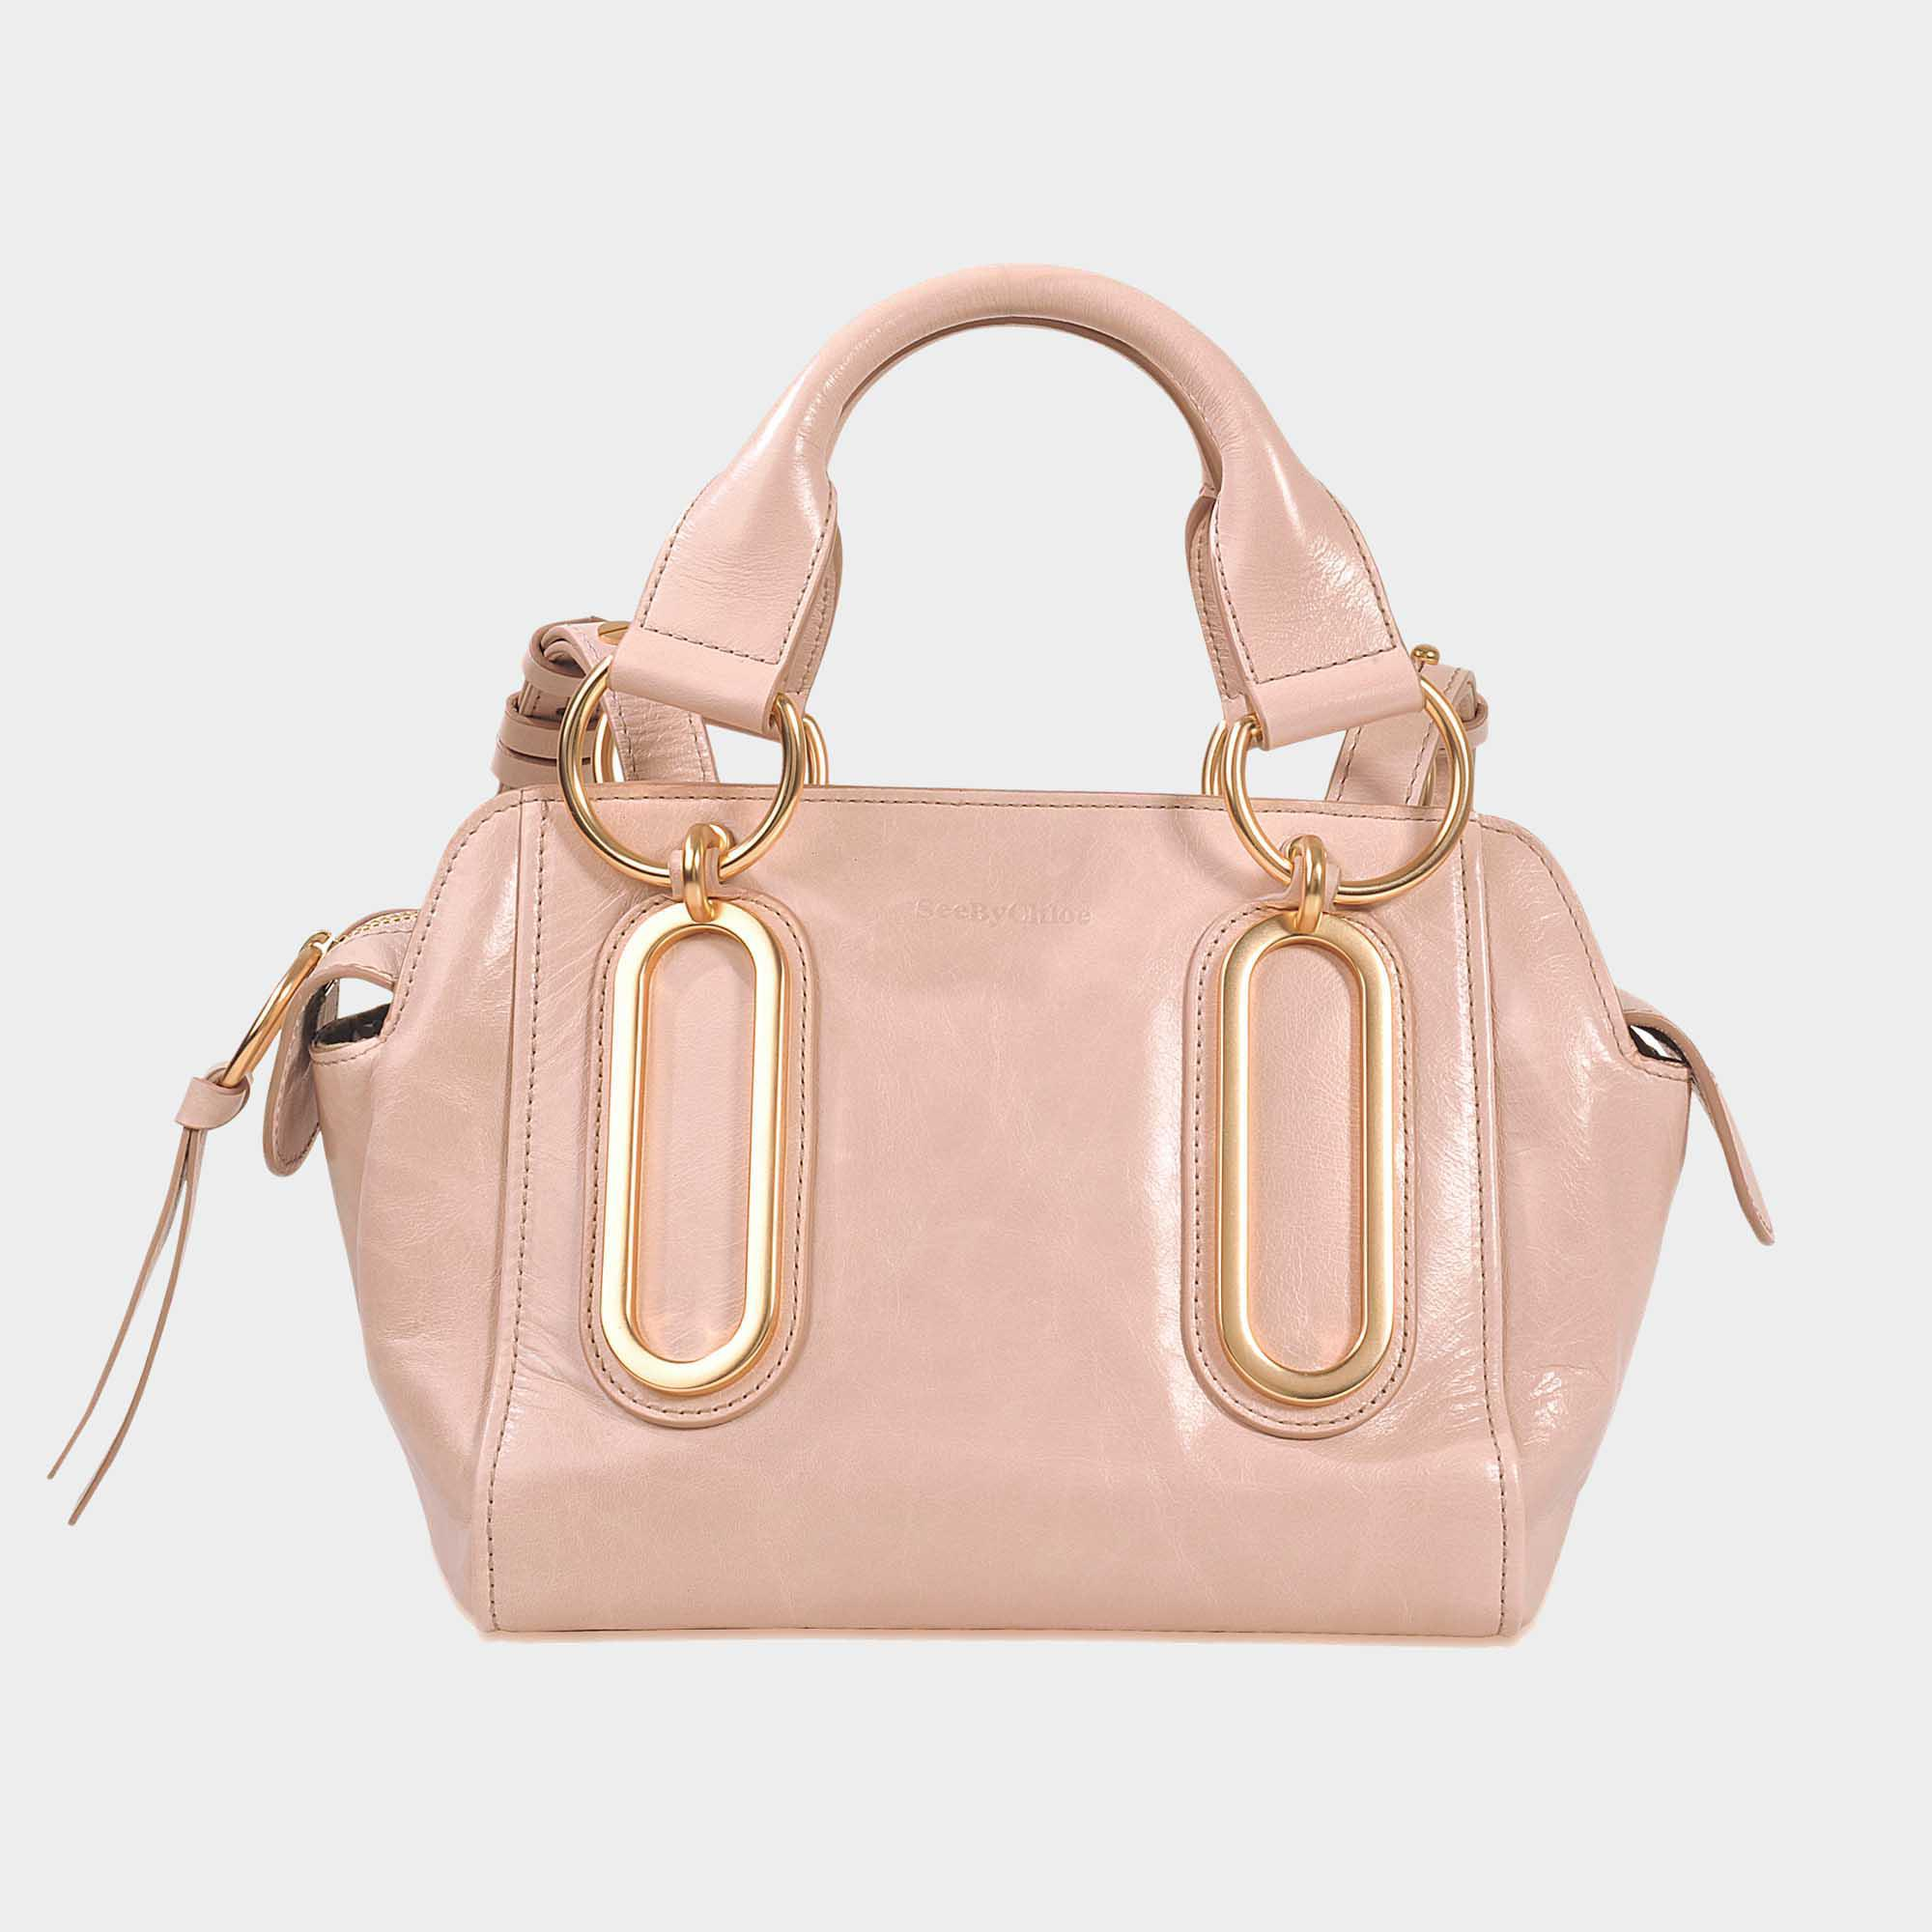 See By Chloé Paige Small Bag in Pink - Lyst 2eda8a1a480